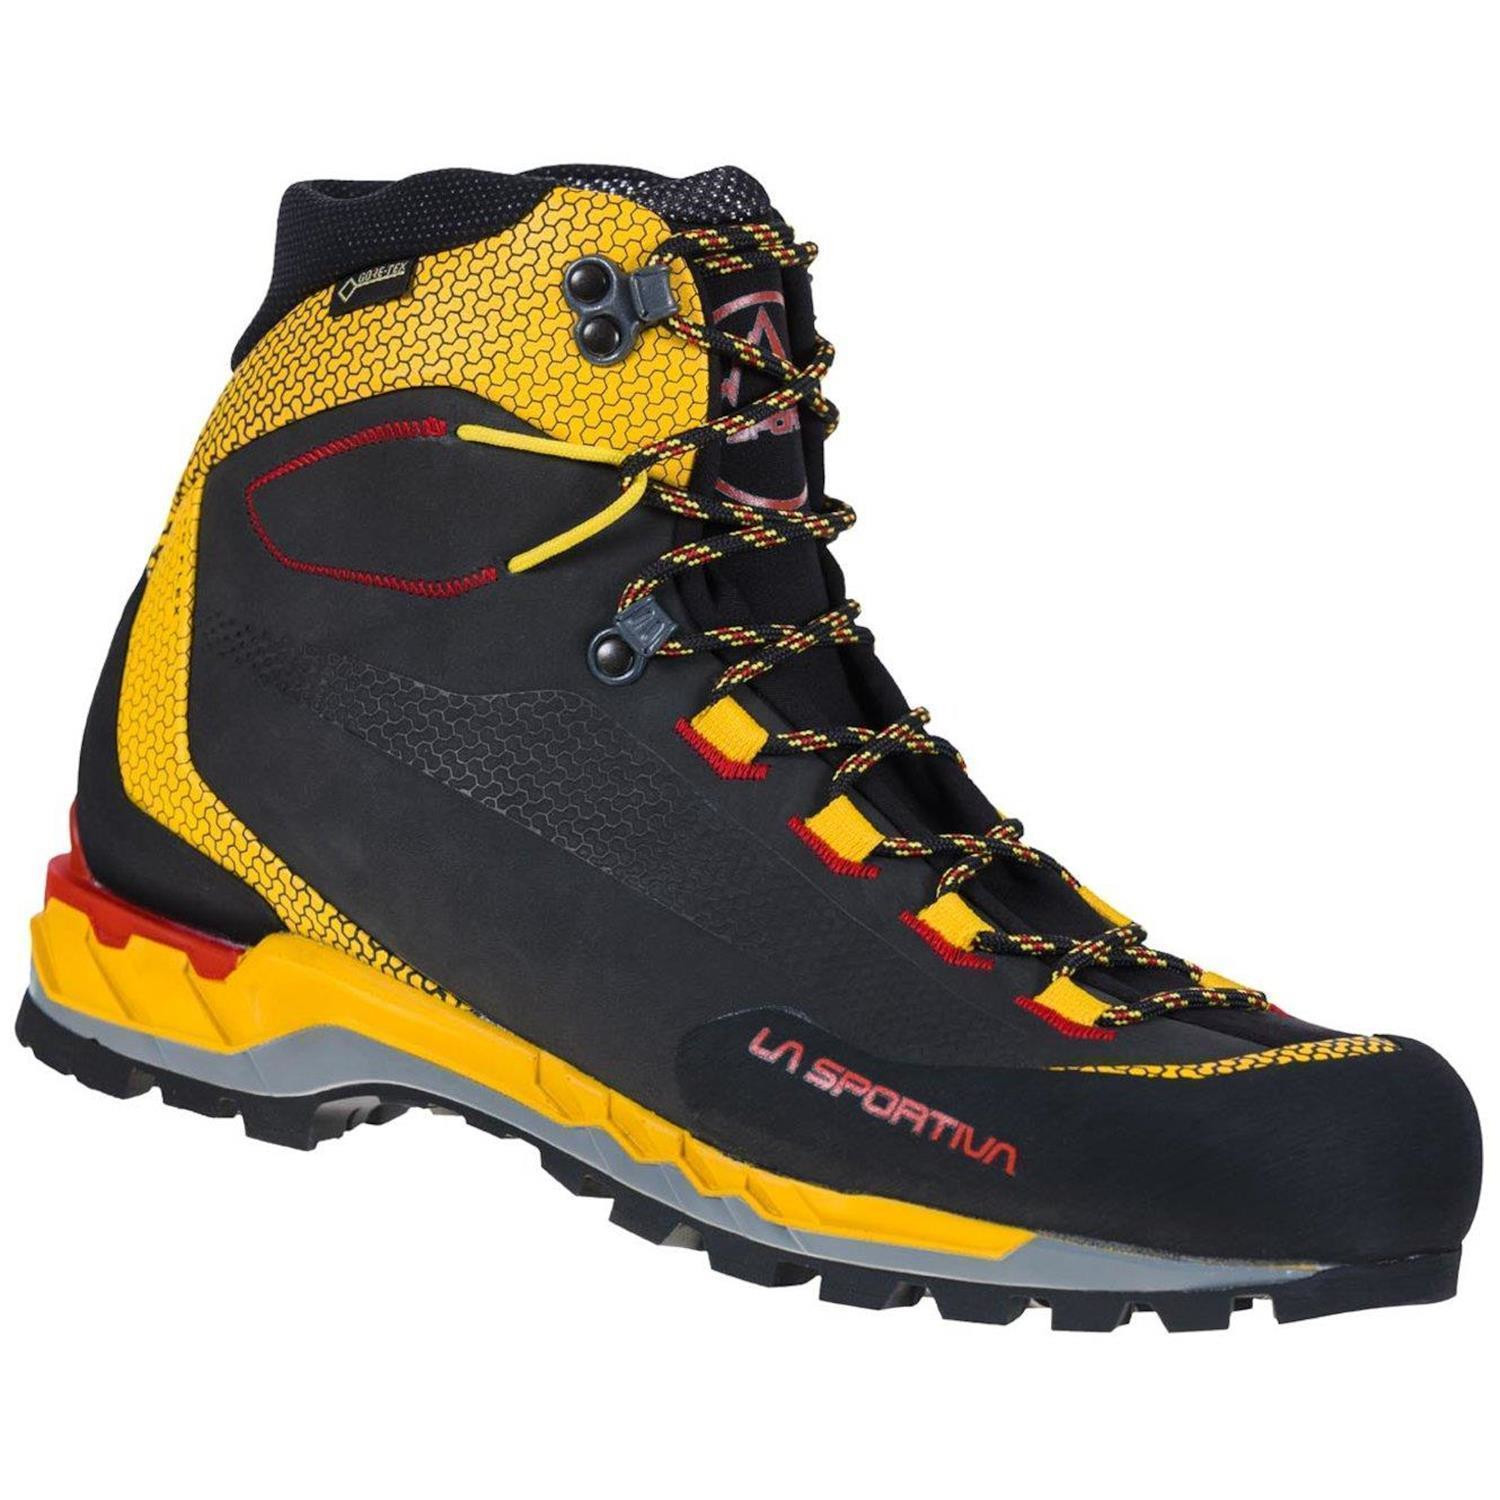 La Sportiva Trango Tech Leather GTX